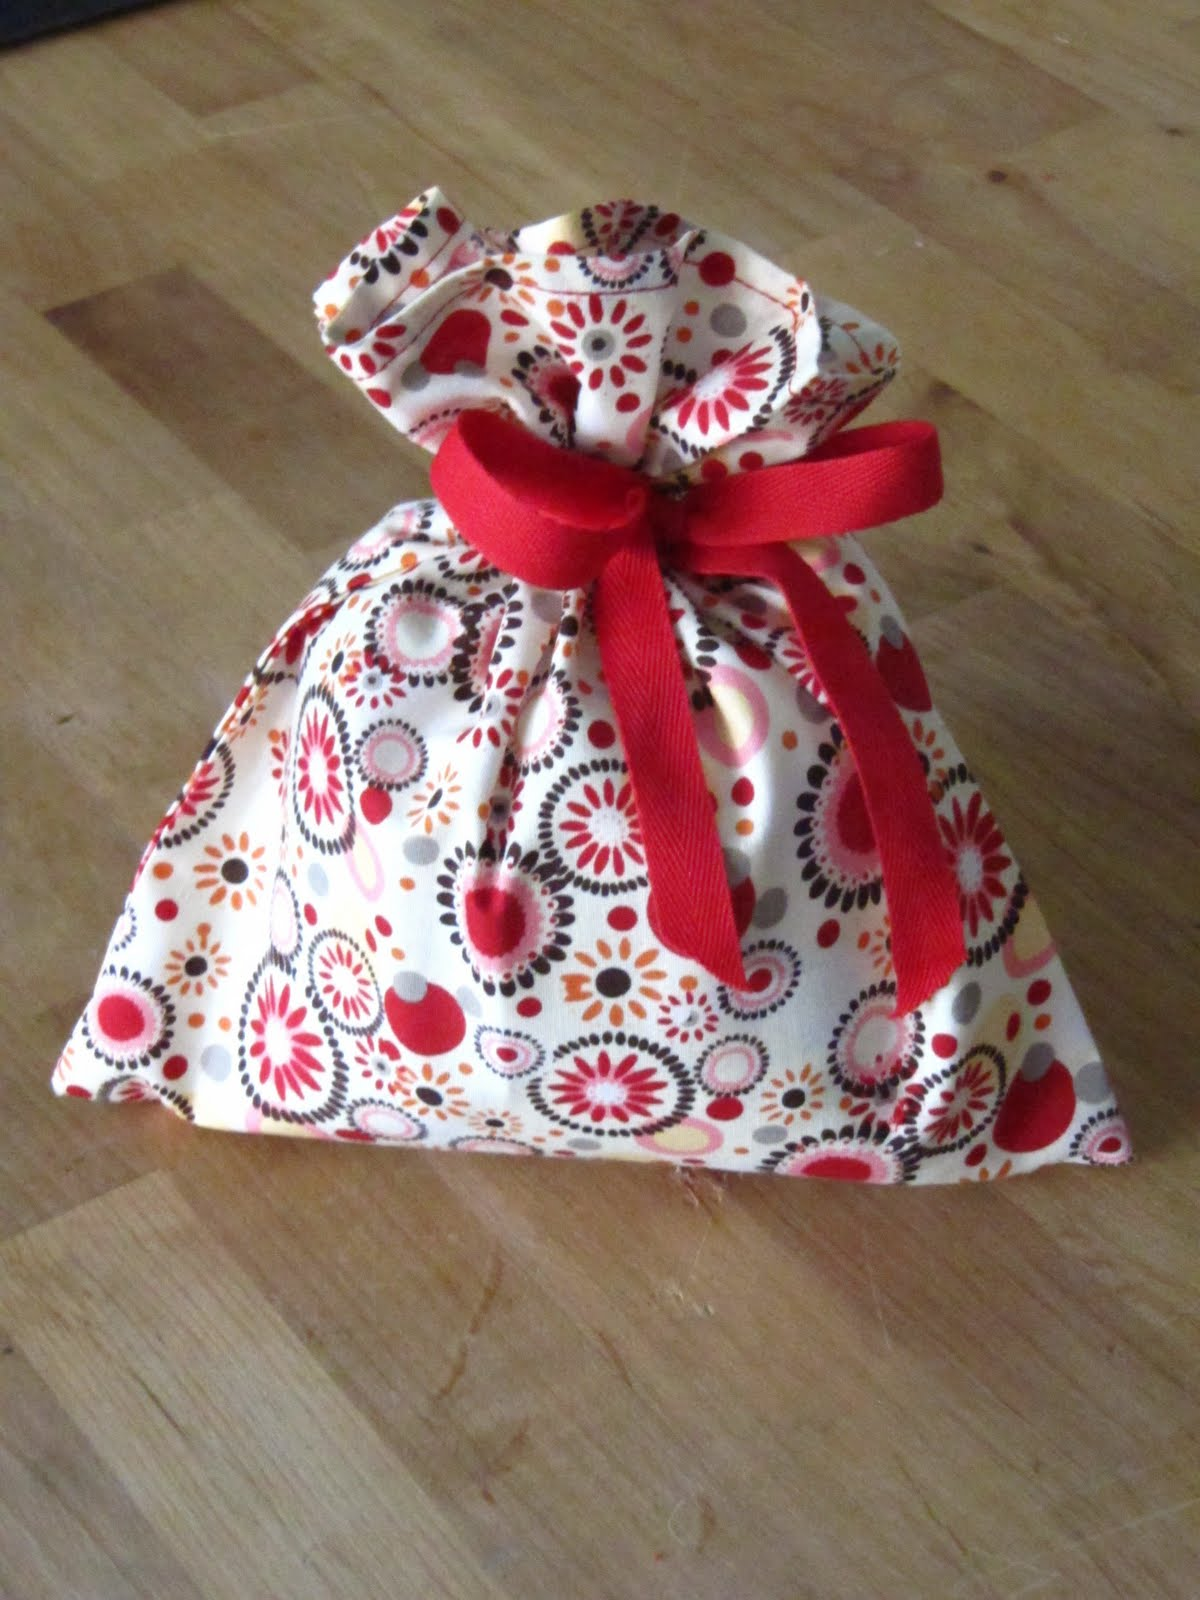 Sew Many Ways...: Tool Time Tuesday...Handmade Fabric Gift ...